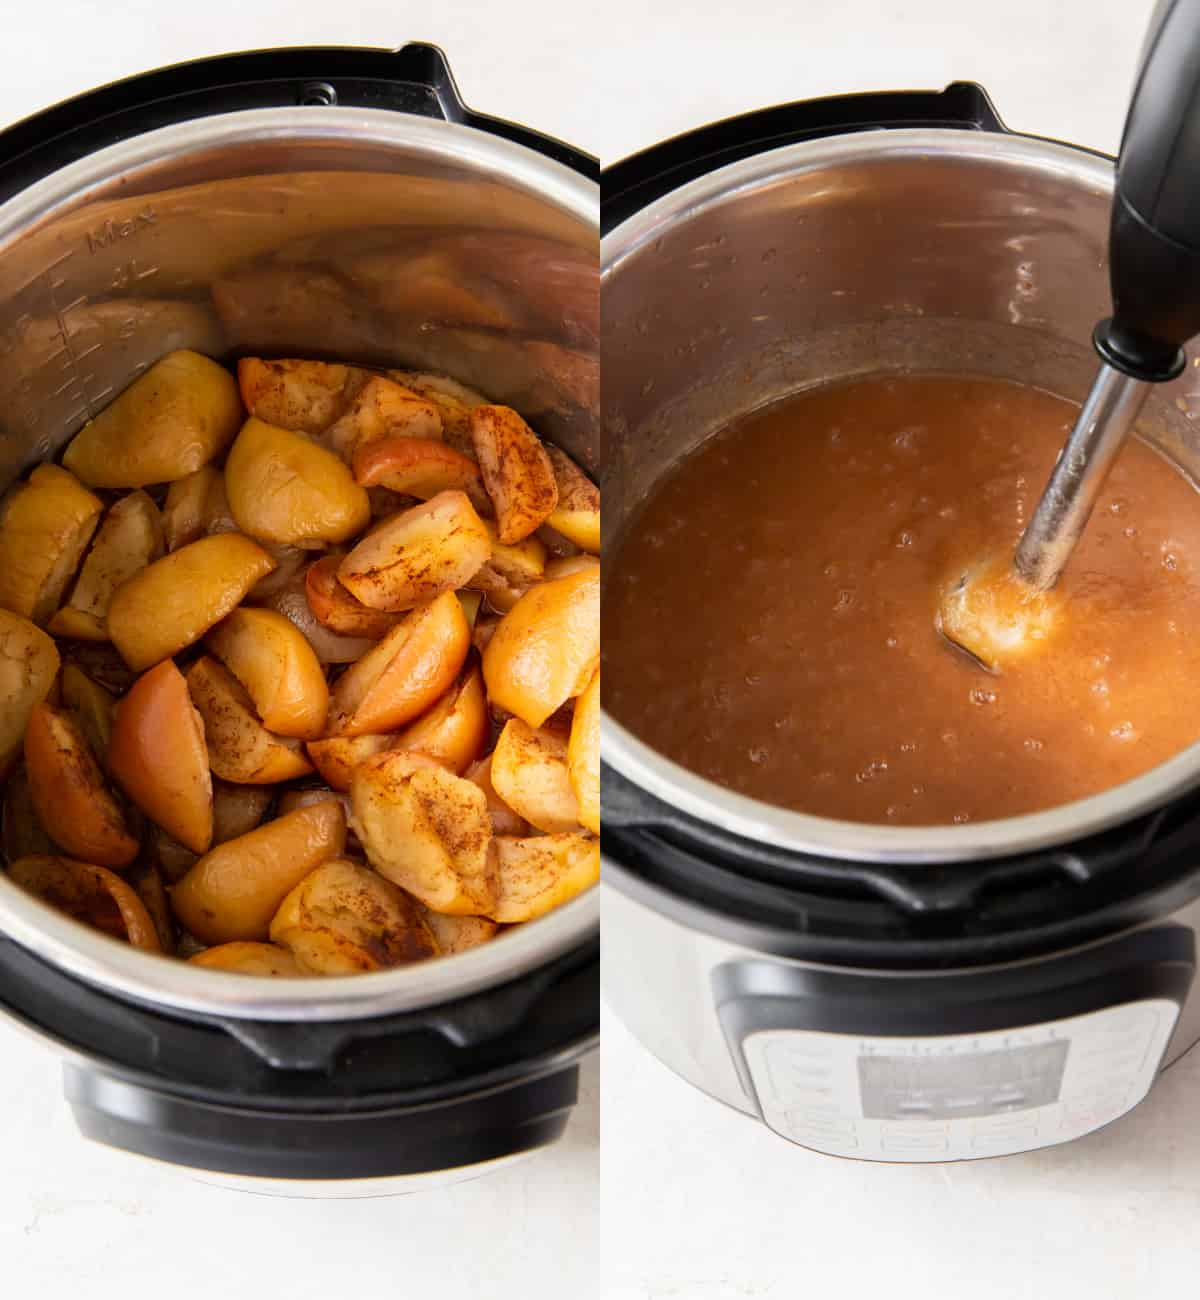 using an immersion blender to puree cooked apples